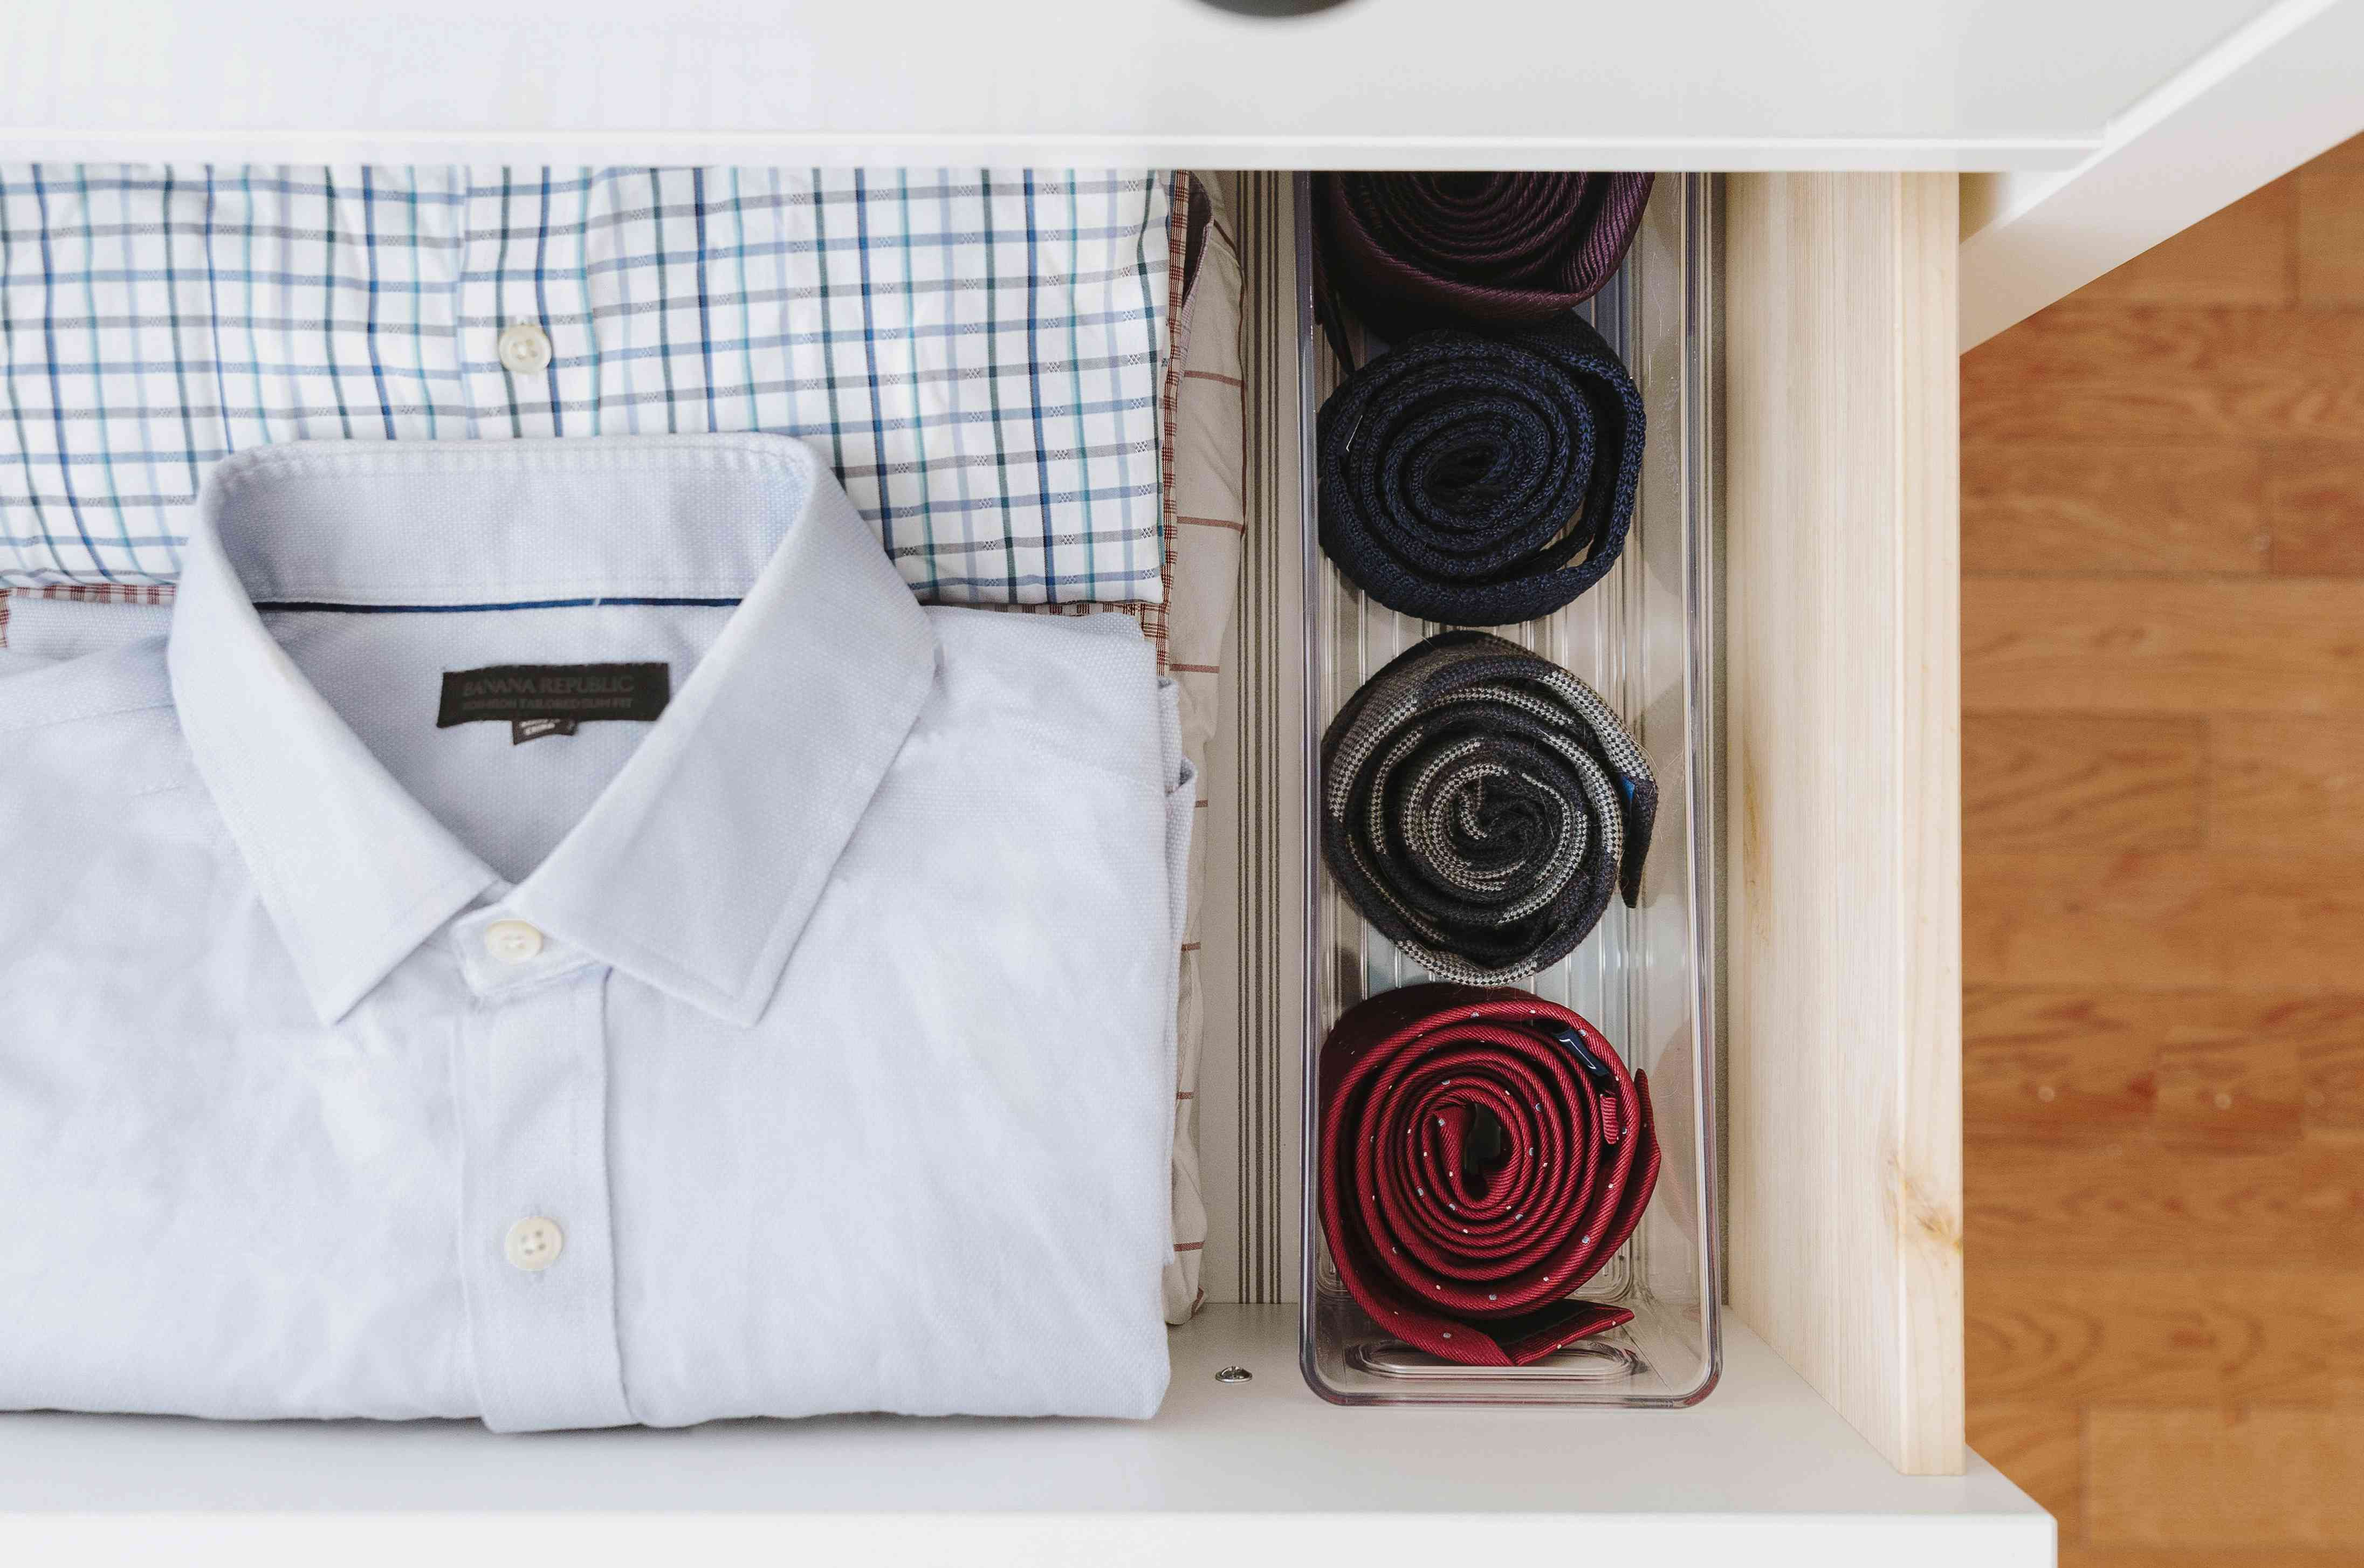 ties rolled up and stored in a plastic organizer